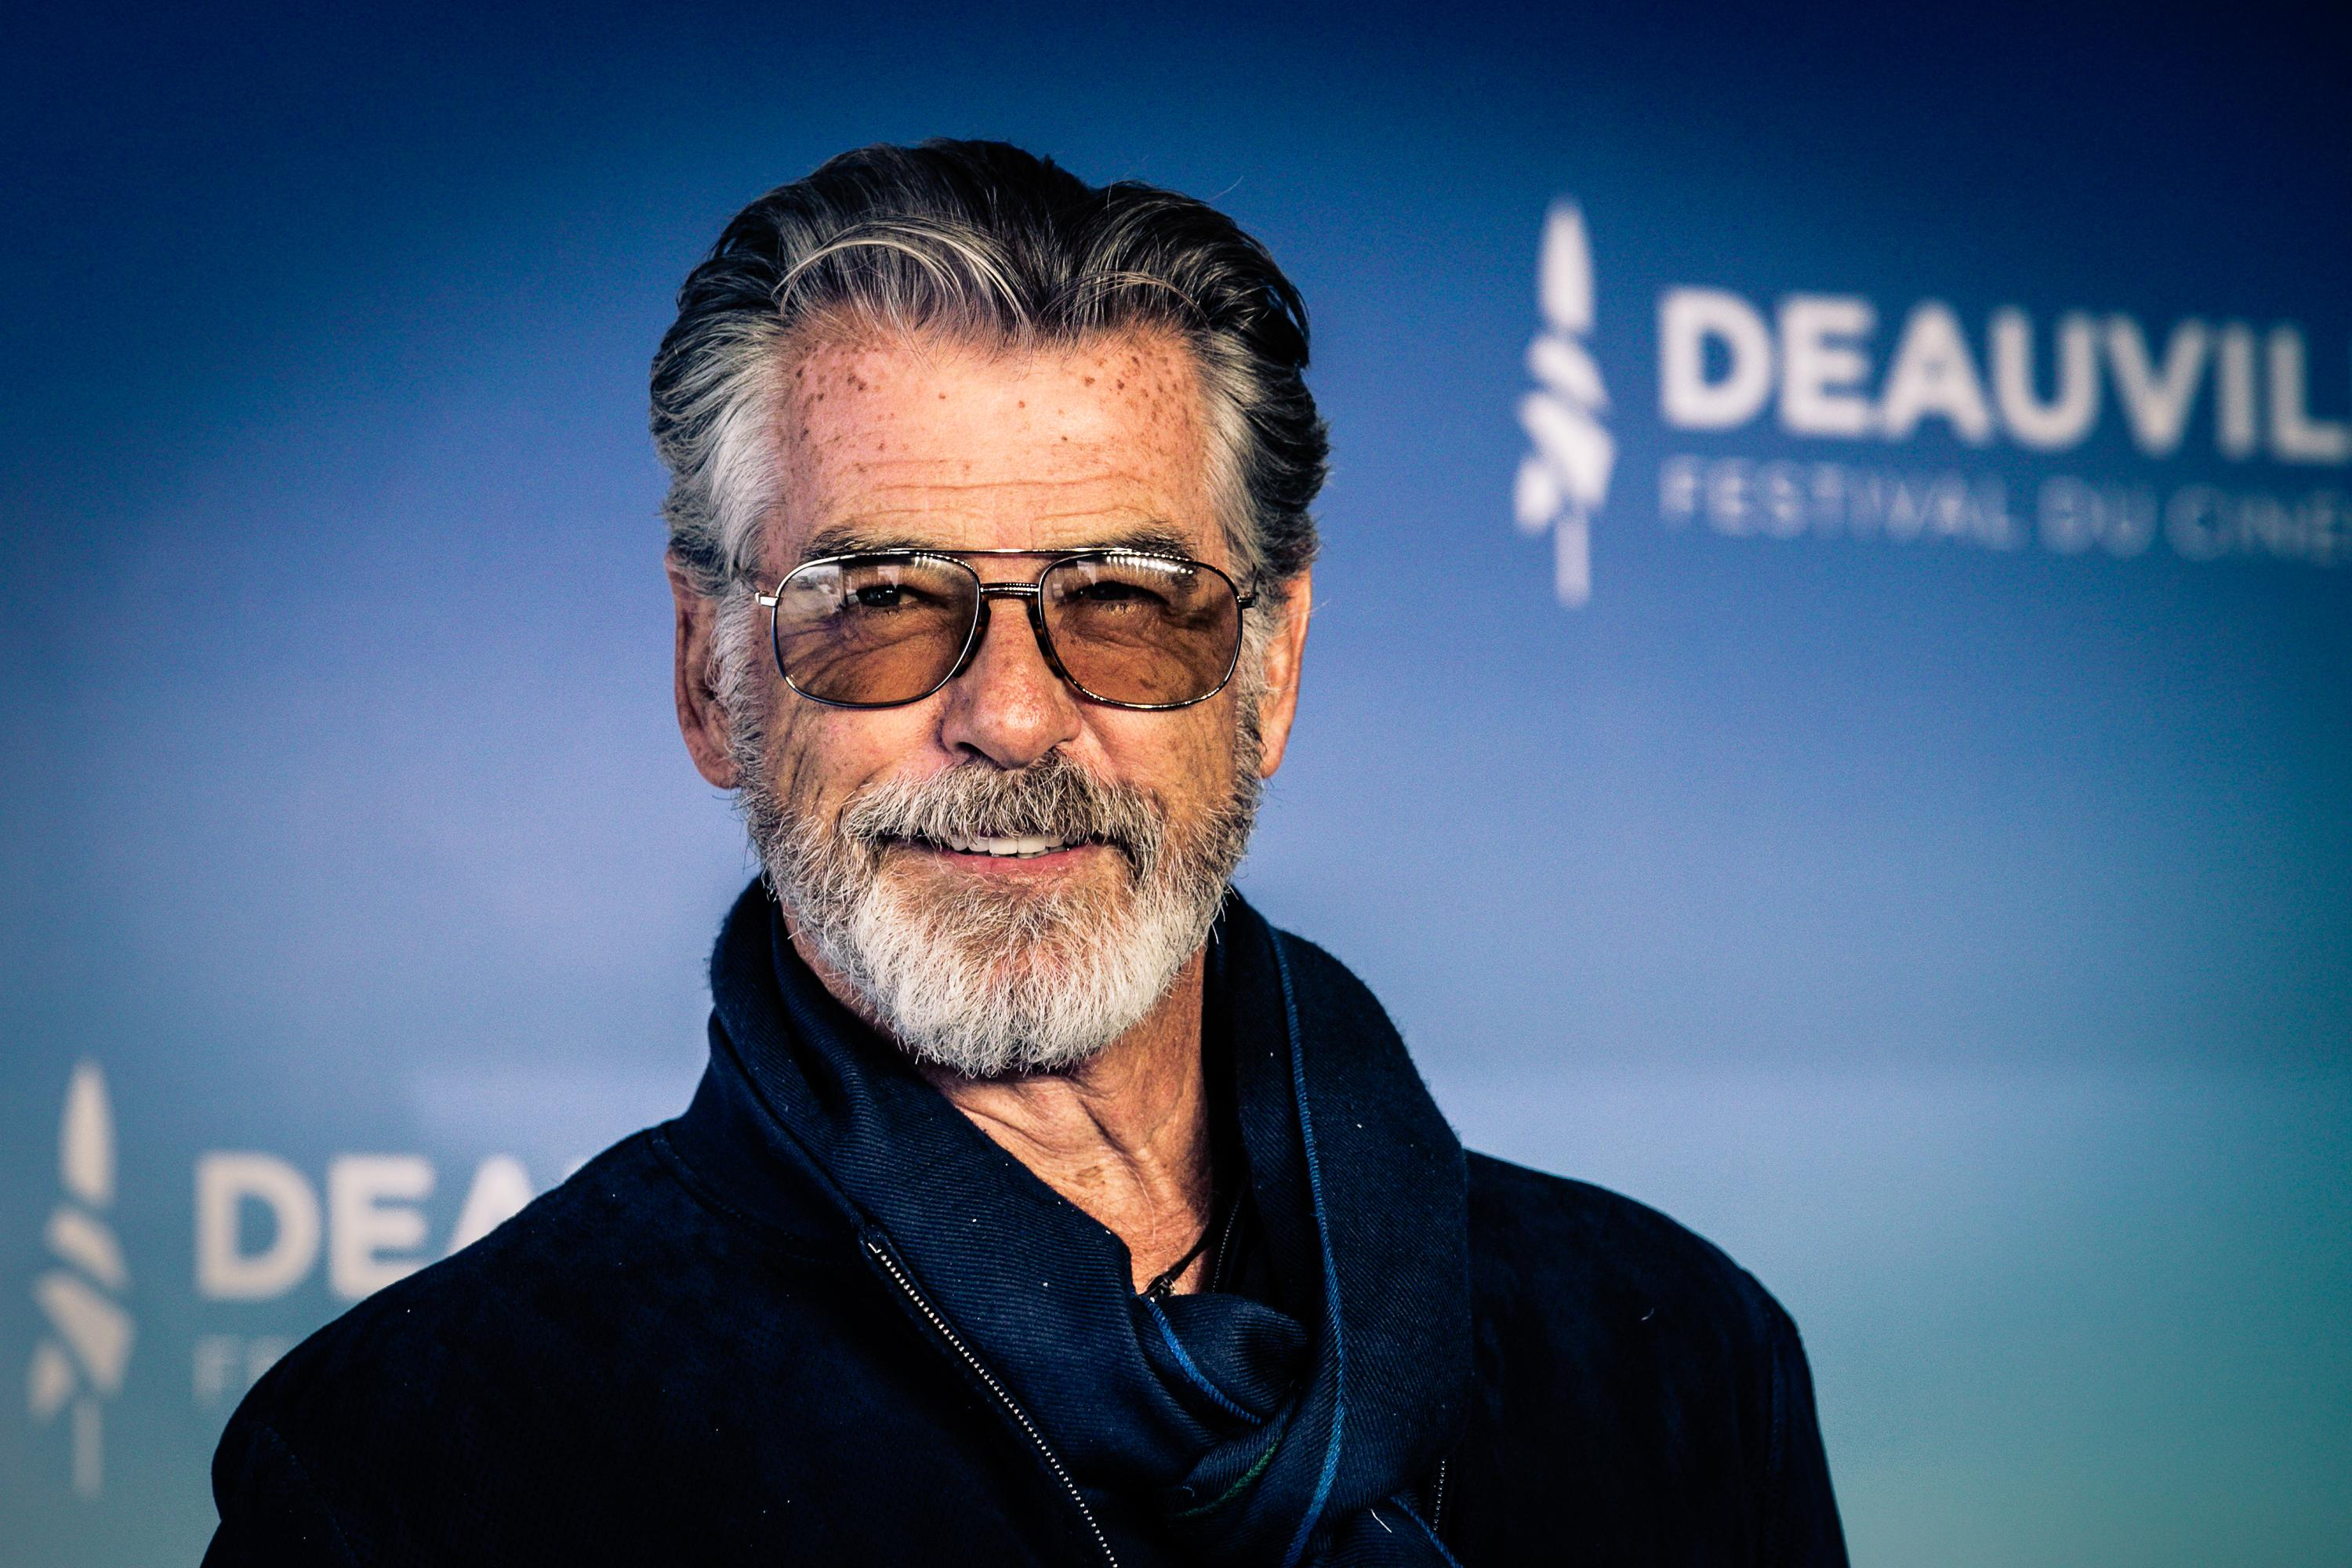 DEAUVILLE, FRANCE - SEPTEMBER 07: (EDITORS NOTE: image was processed with digital filters) Actor Pierce Brosnan attends a photocall during the 45th Deauville American Film Festival on September 07, 2019 in Deauville, France. (Photo by Marc Piasecki/WireImage)